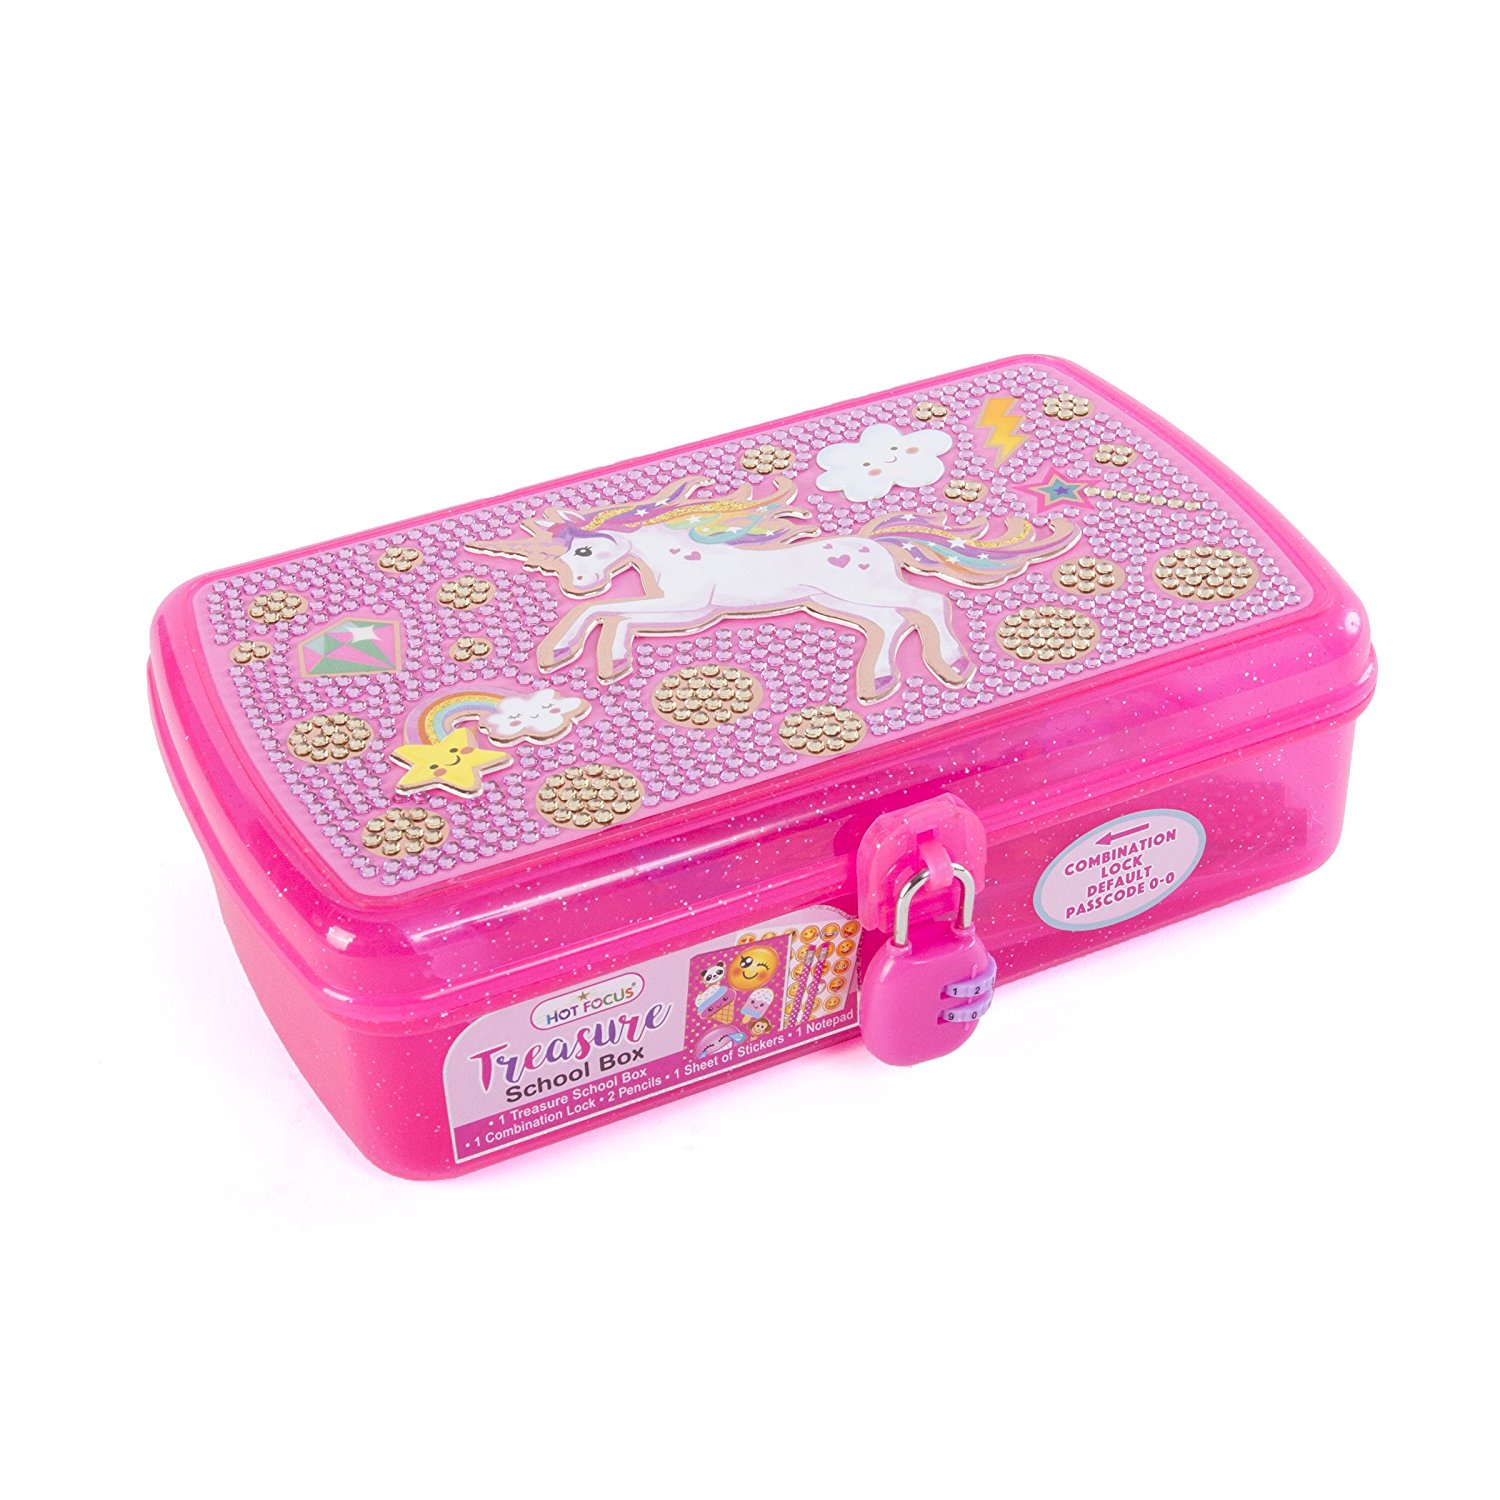 Hot Focus Treasure School Box with Lock Unicorn Girls Pencil Case Box Includes Pencils, Notepad and Stickers